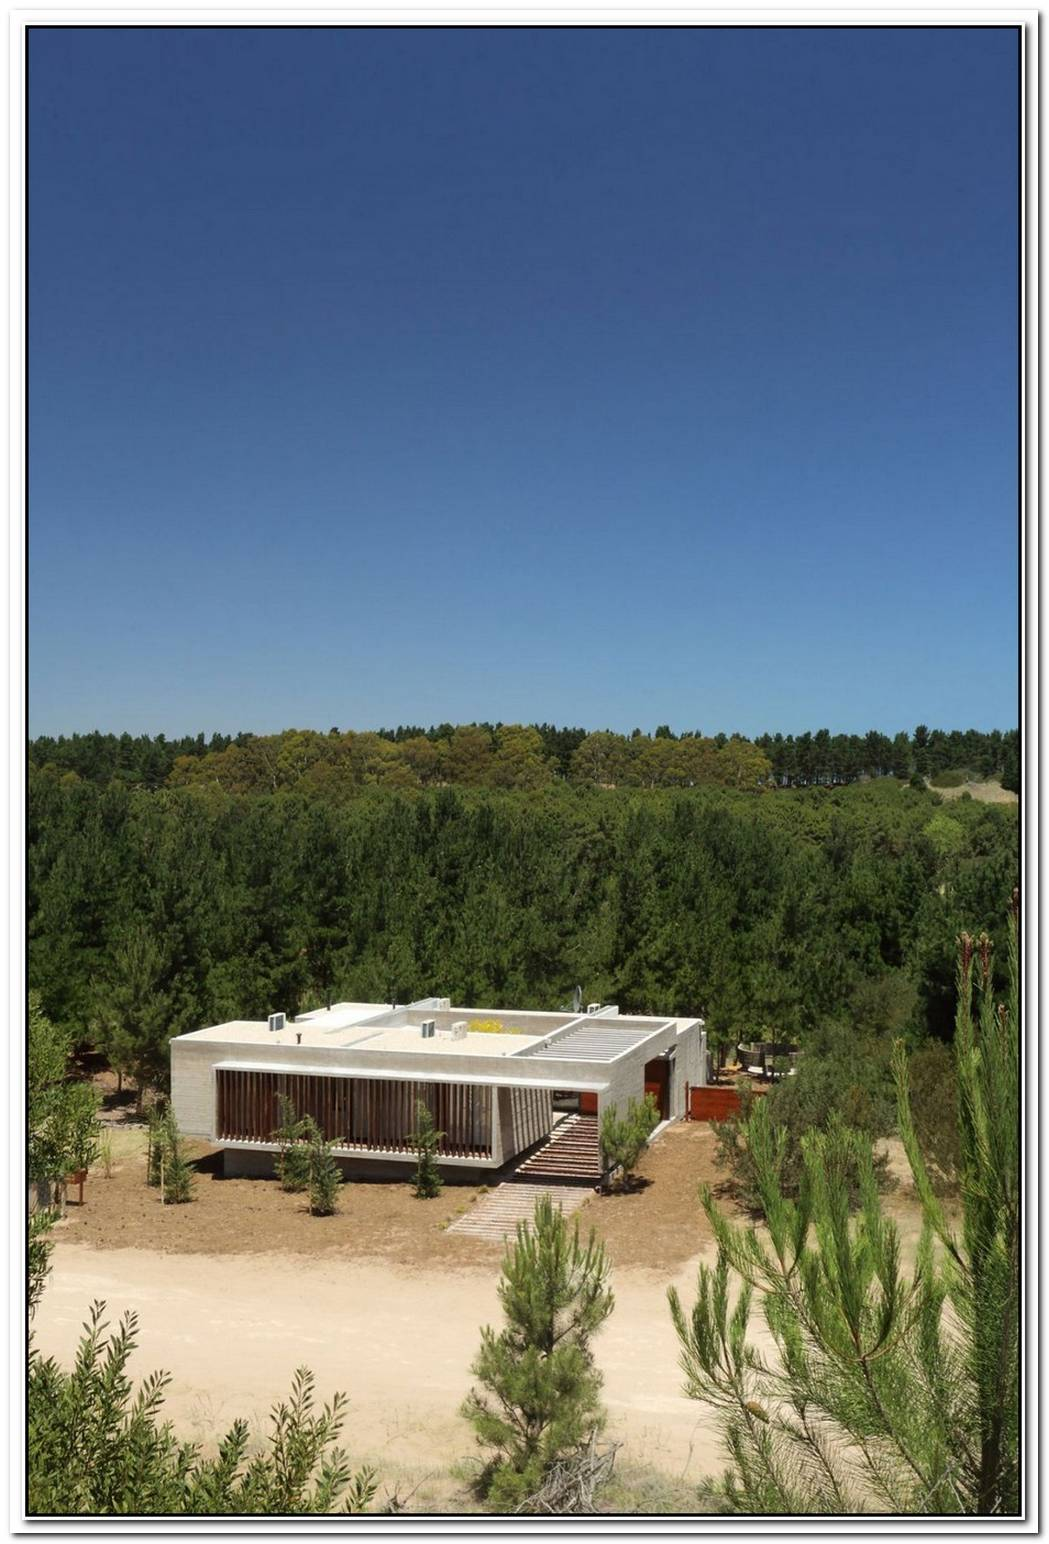 A Summer House Set On Top Of A Dune With A Forest Backdrop